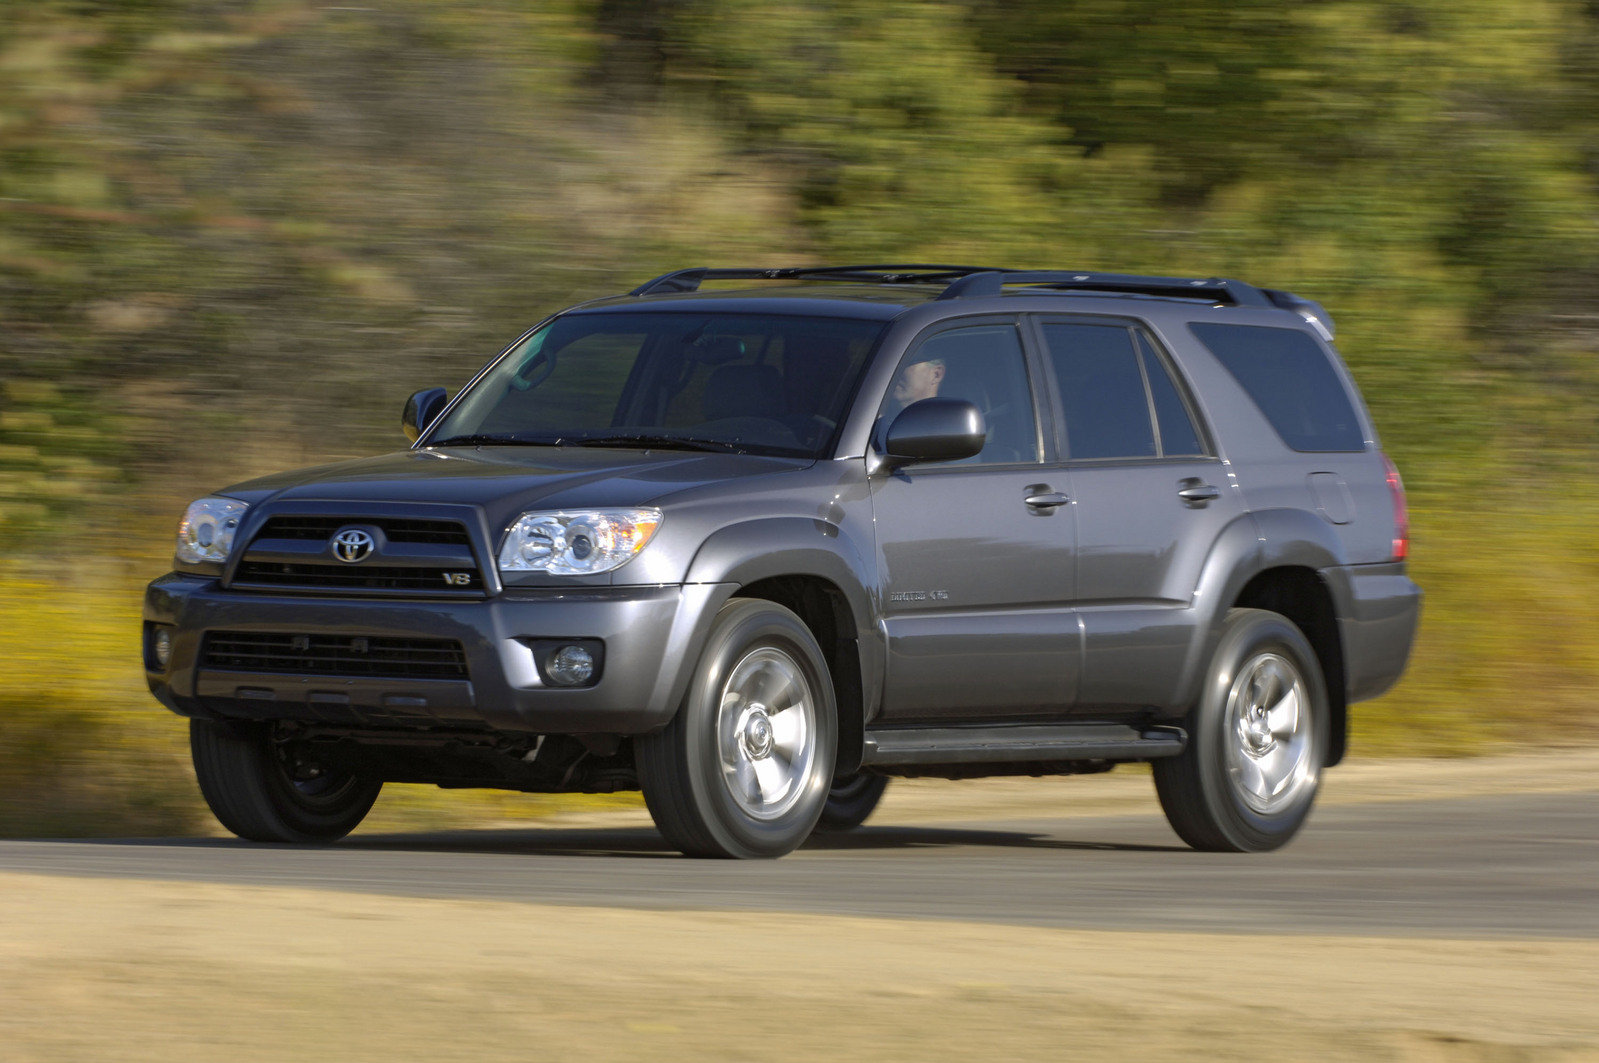 2006 toyota 4runner picture 94365 car review top speed. Black Bedroom Furniture Sets. Home Design Ideas